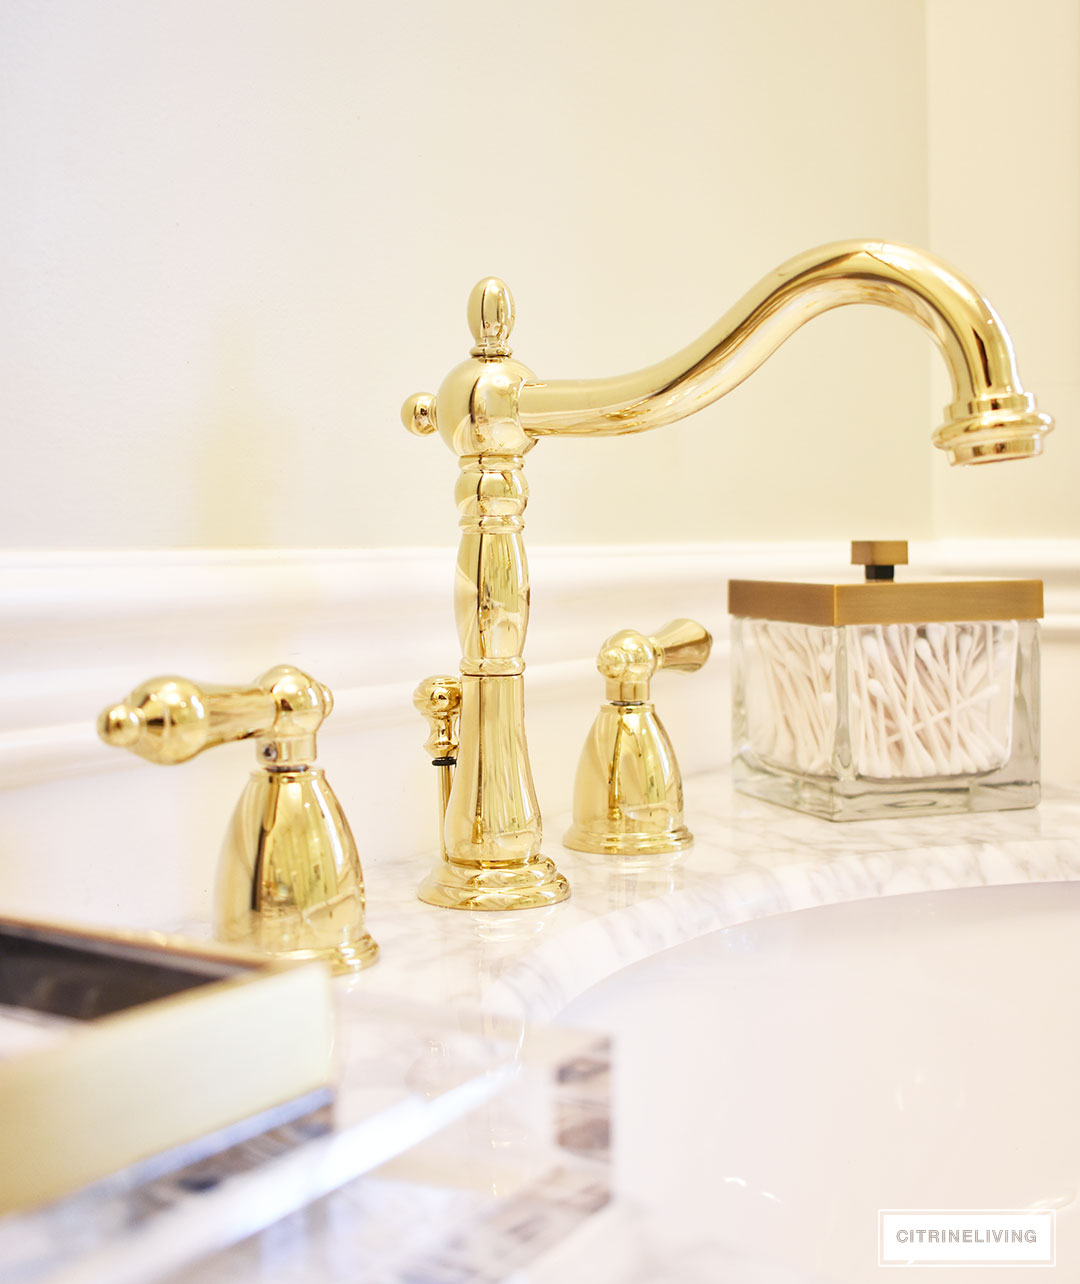 Beautiful Traditional Style Brass Bathroom Faucet With Lever Handles